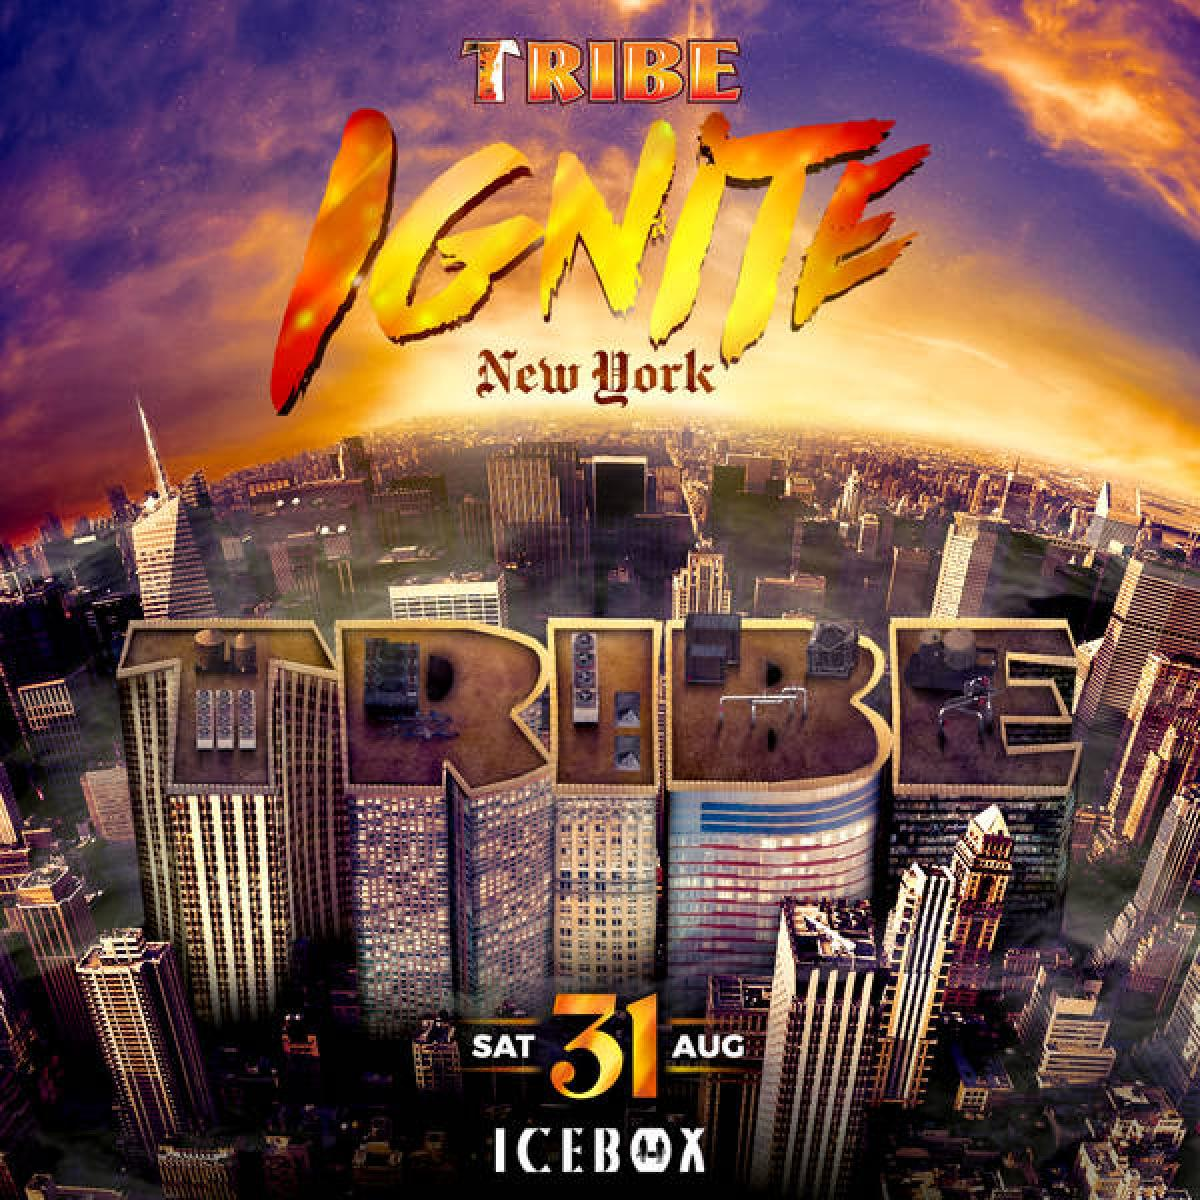 TRIBE Ignite New York flyer or graphic.